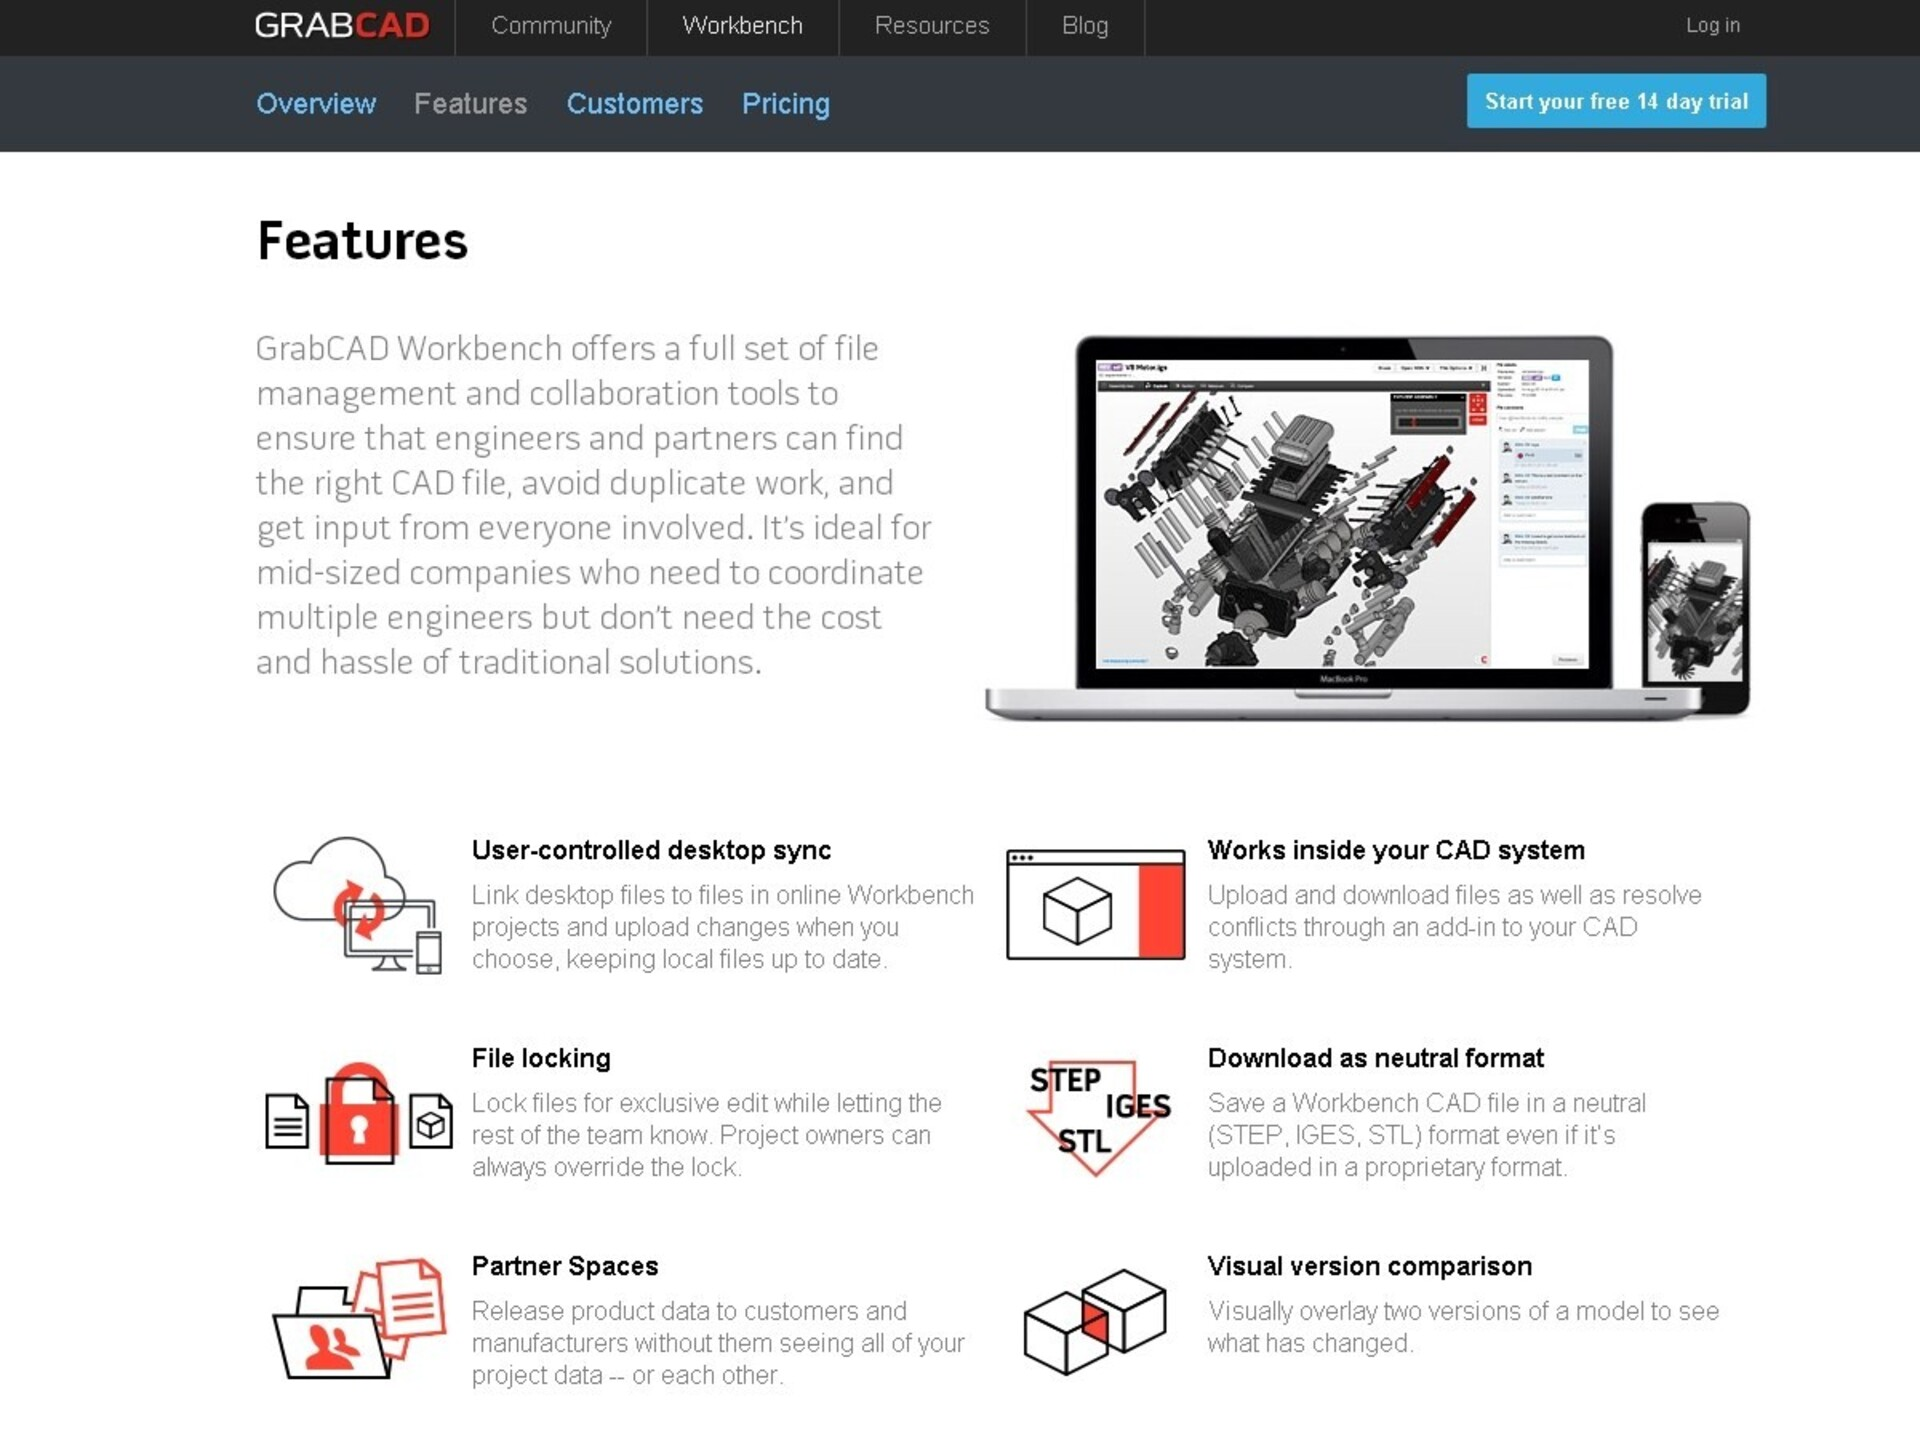 GrabCAD Sold for a Reported €77 Million | Technology | ERR